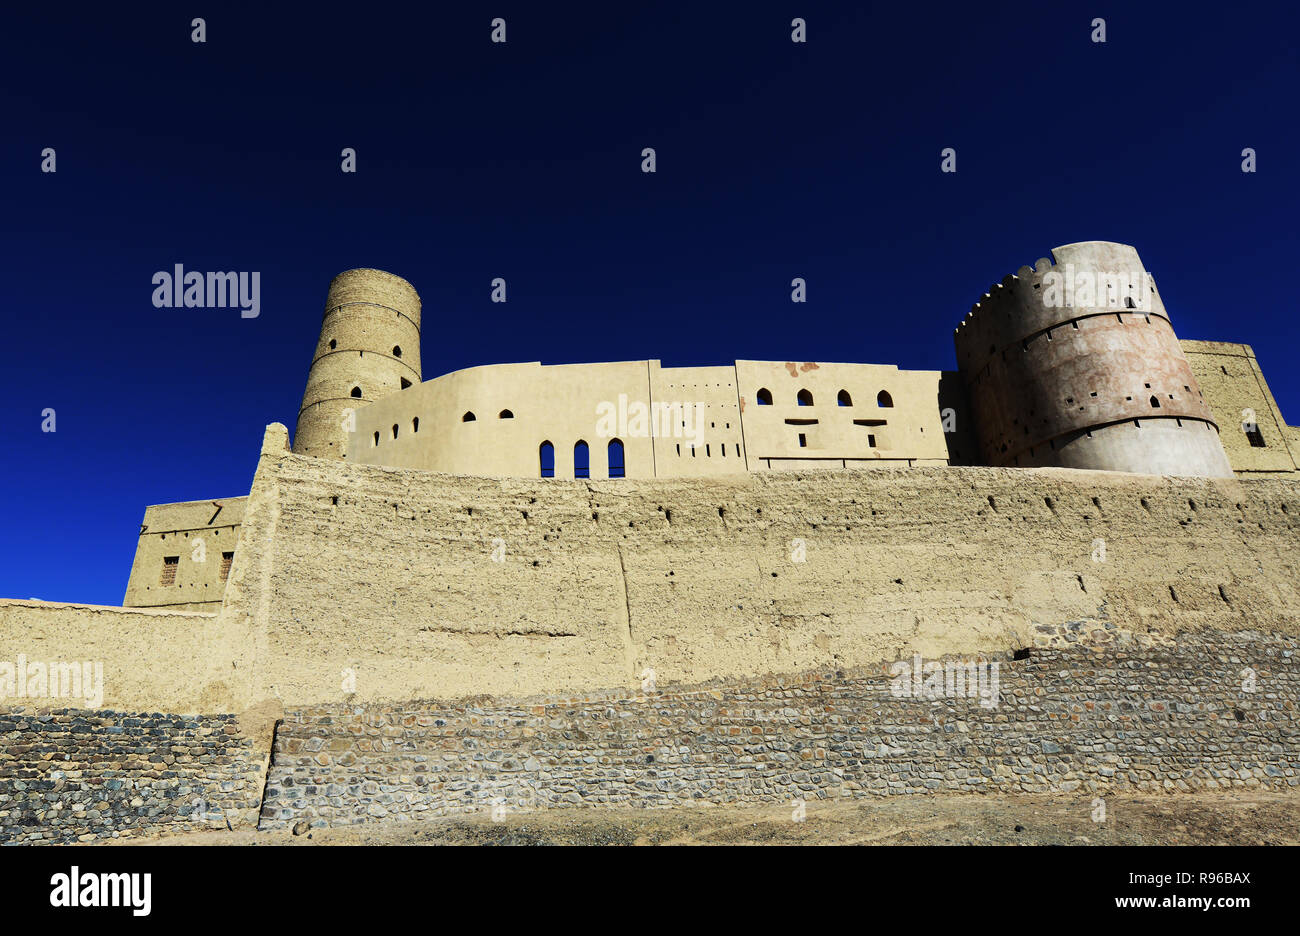 Bahla fort in Oman. - Stock Image